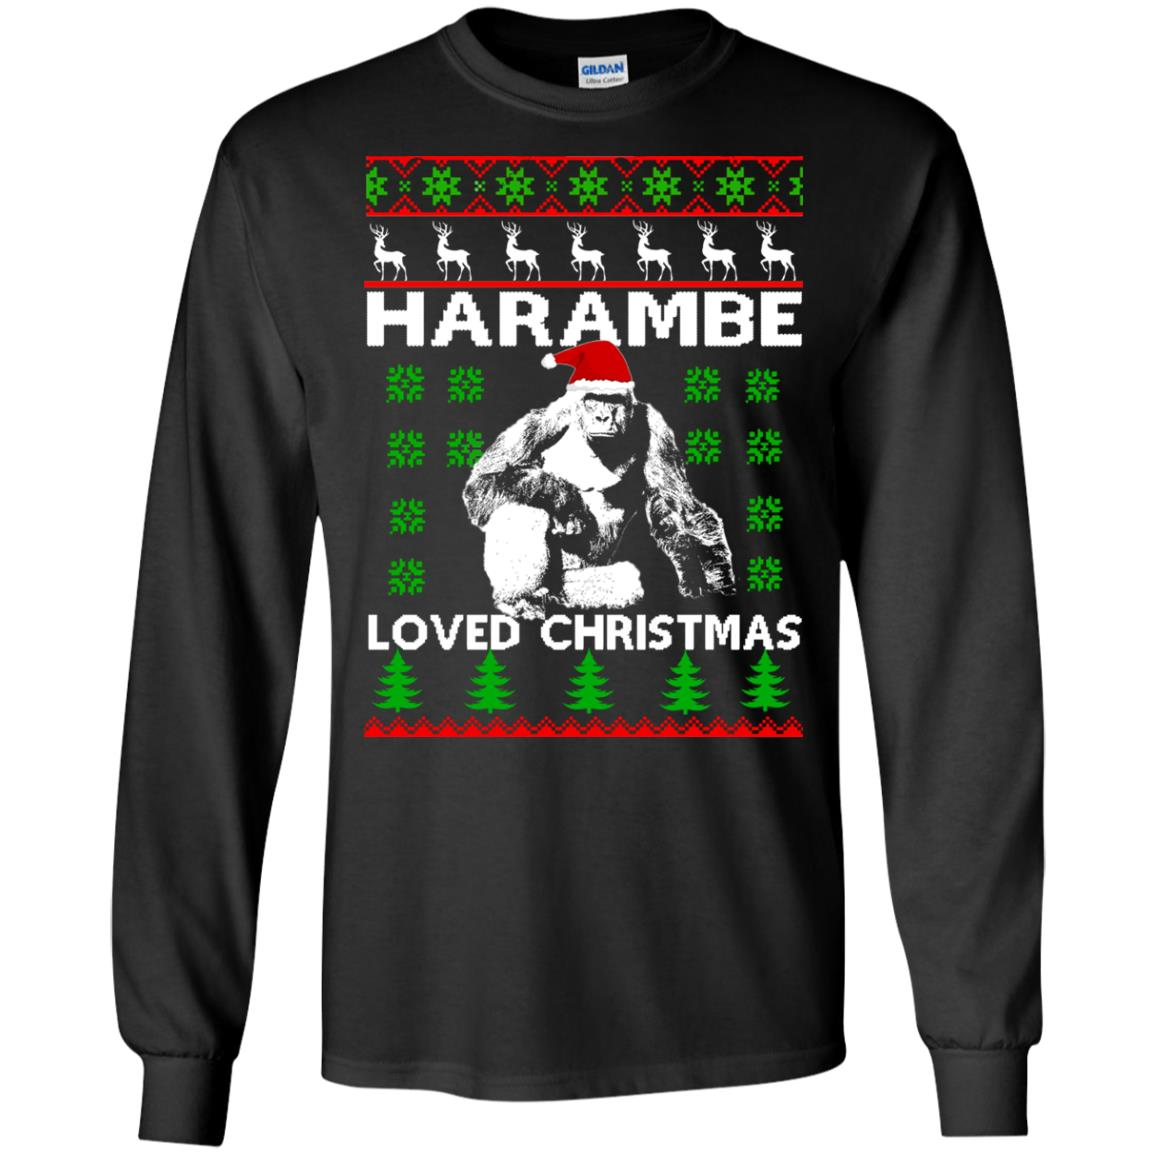 image 808 - Harambe Loved Christmas Sweater, Shirt, Hoodie